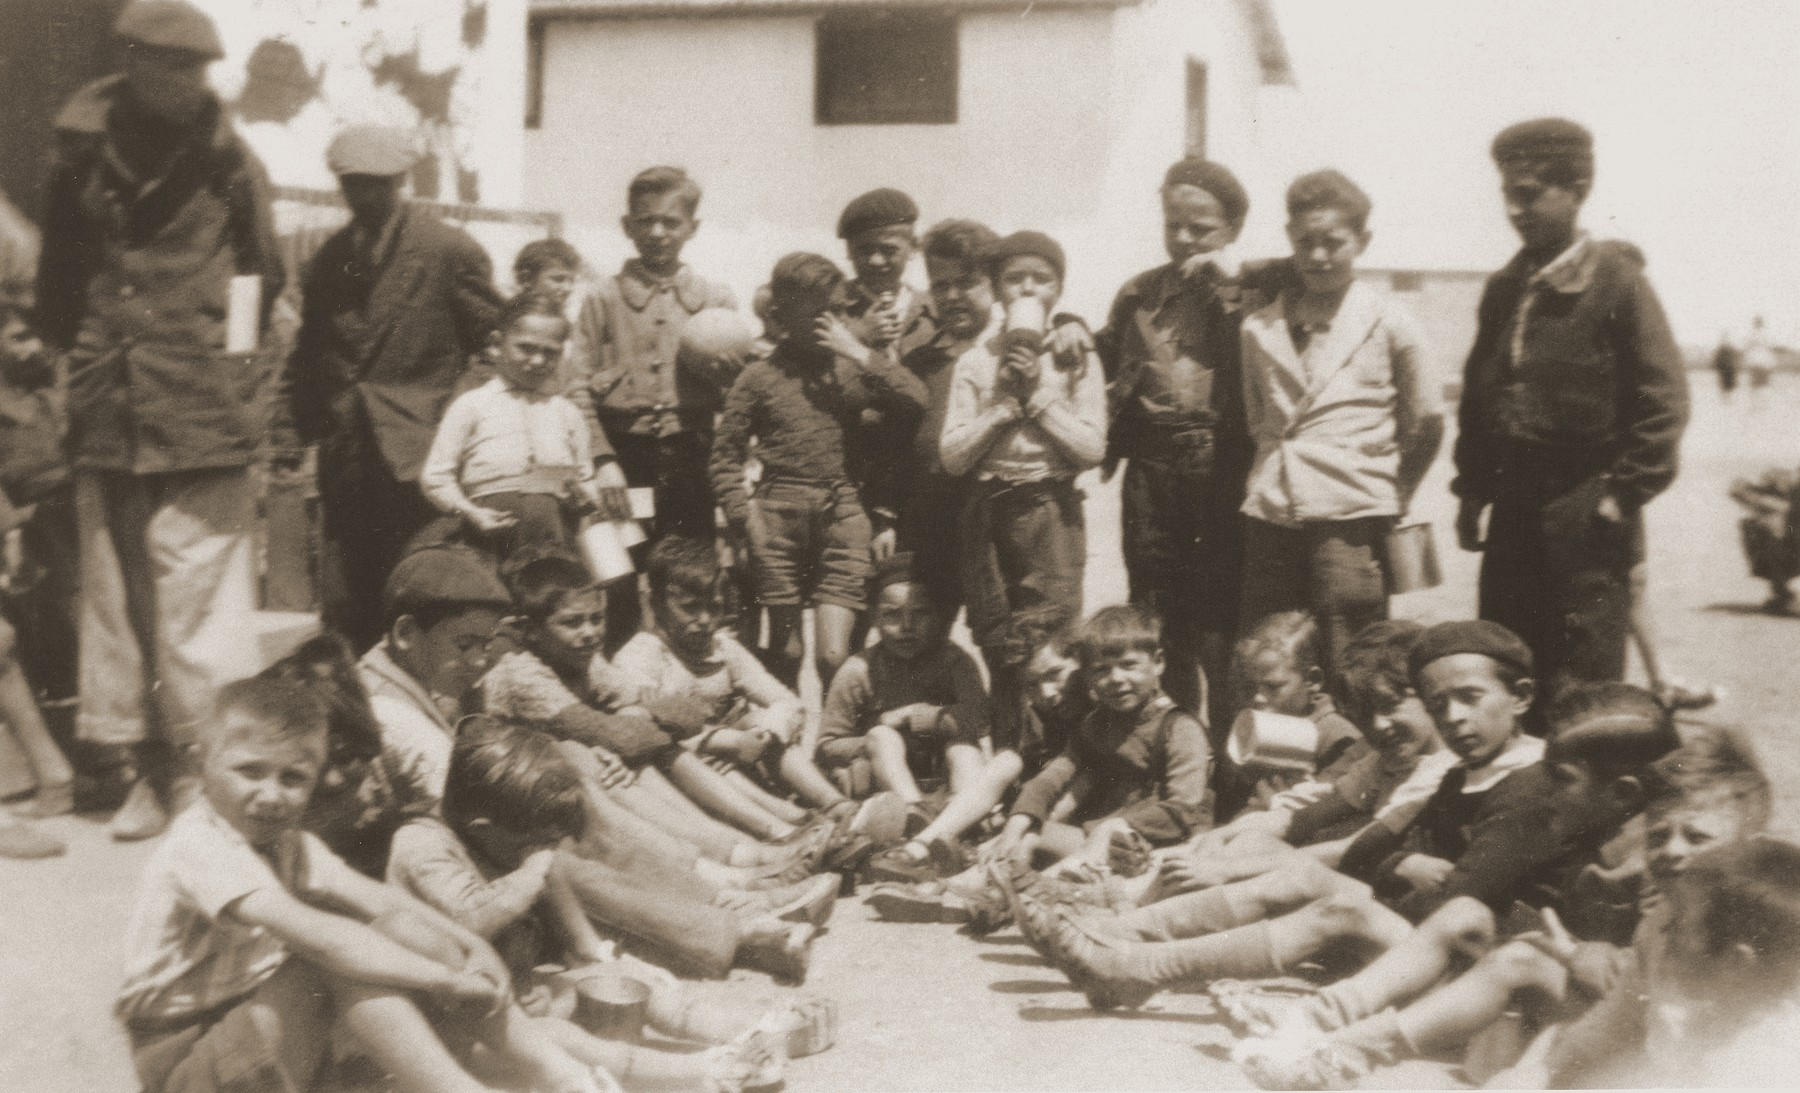 Children at the Rivesaltes internment camp receive new shoes.